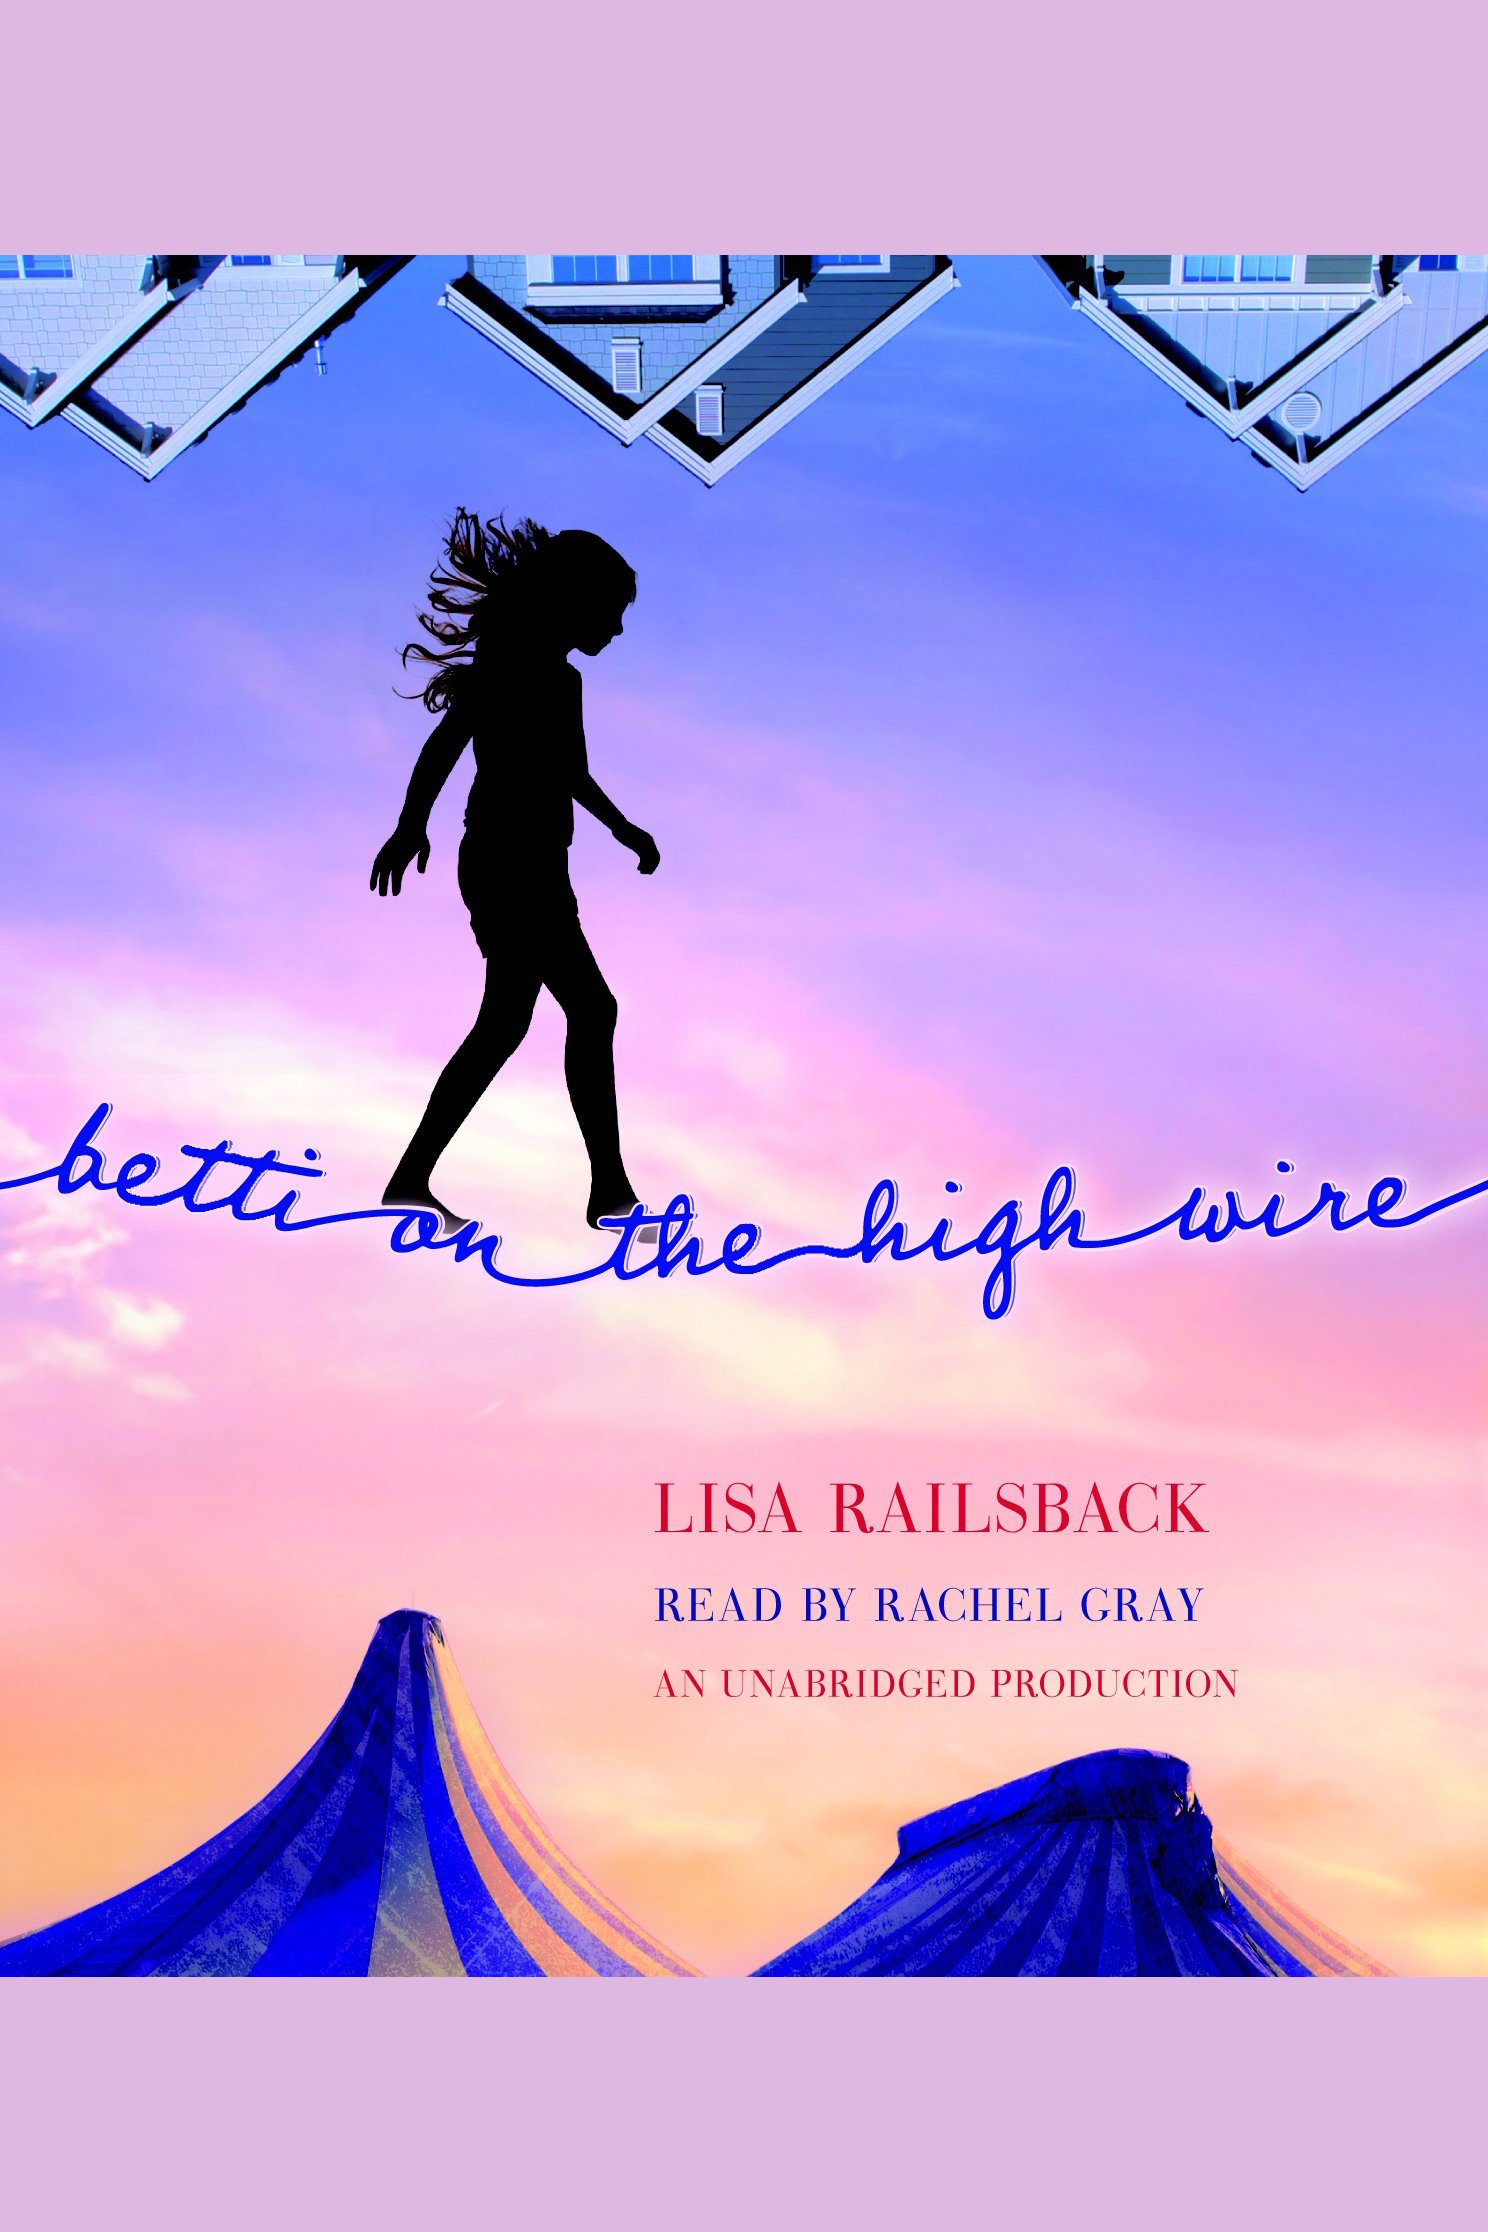 Betti on the high wire cover image